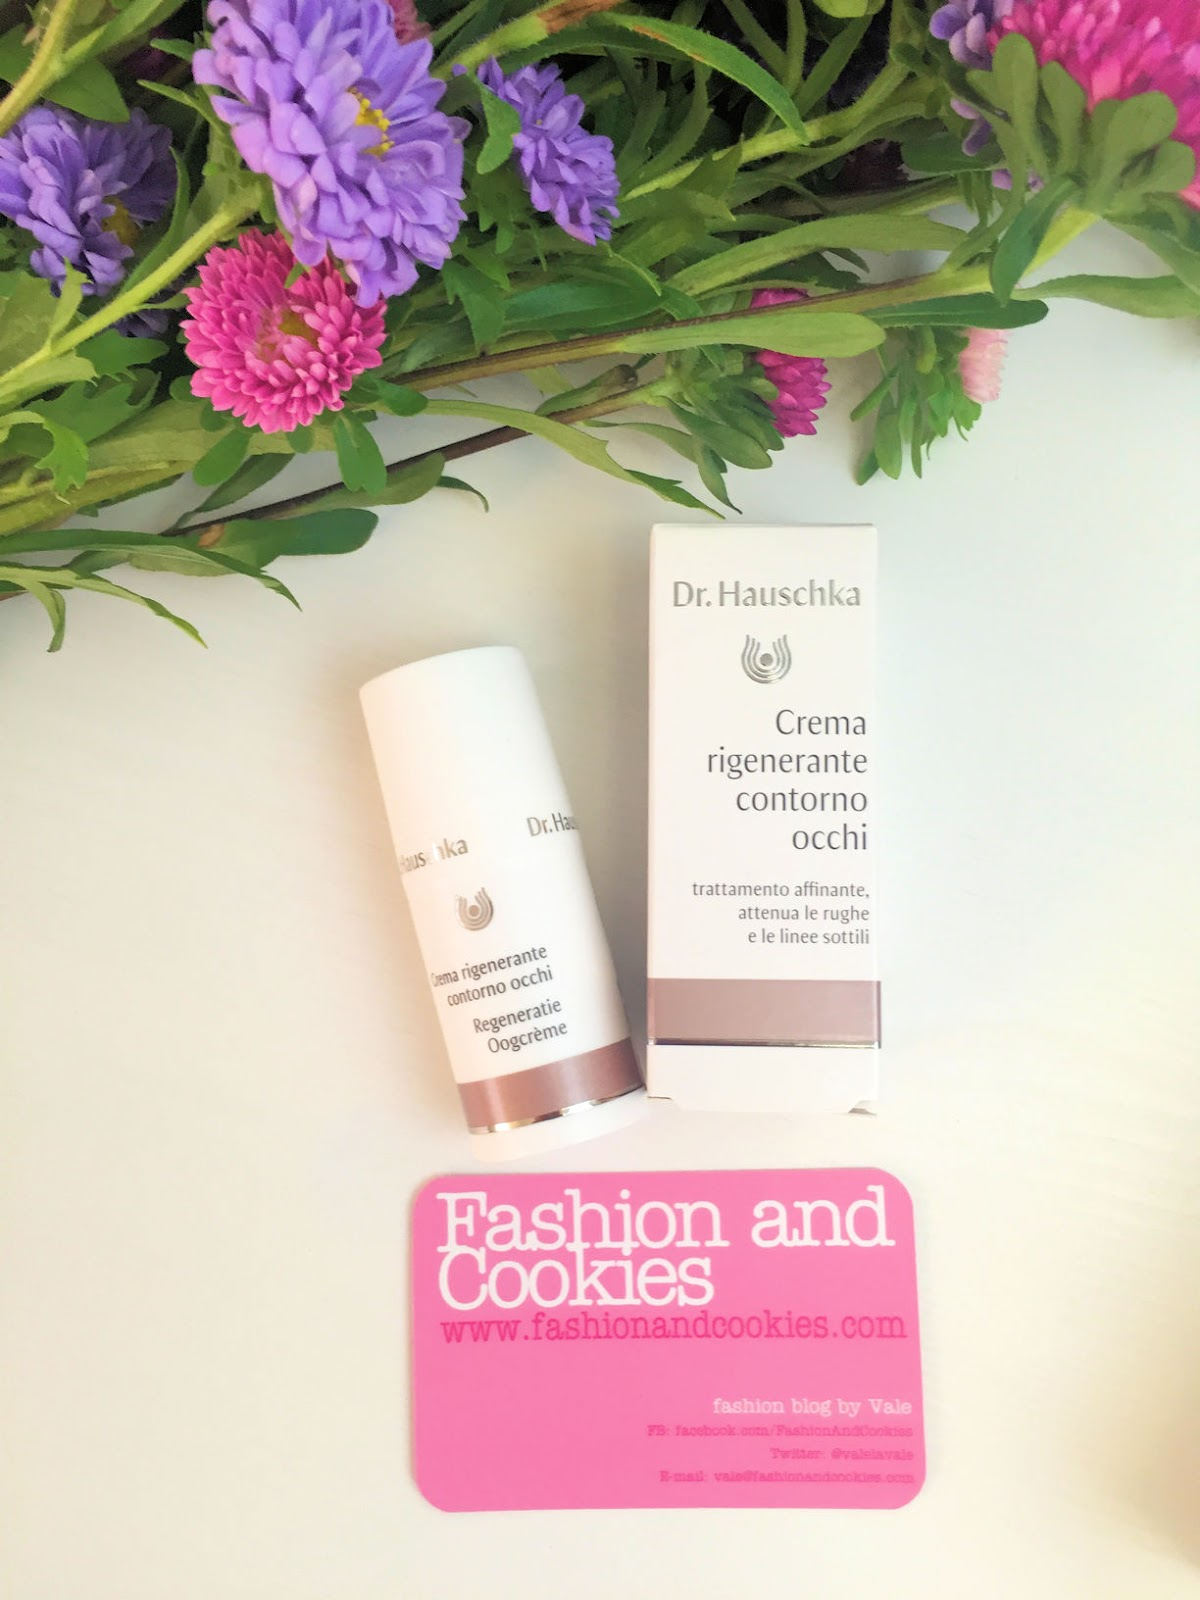 Dr Hauschka Crema rigenerante contorno occhi on Fashion and Cookies beauty blog, beauty blogger